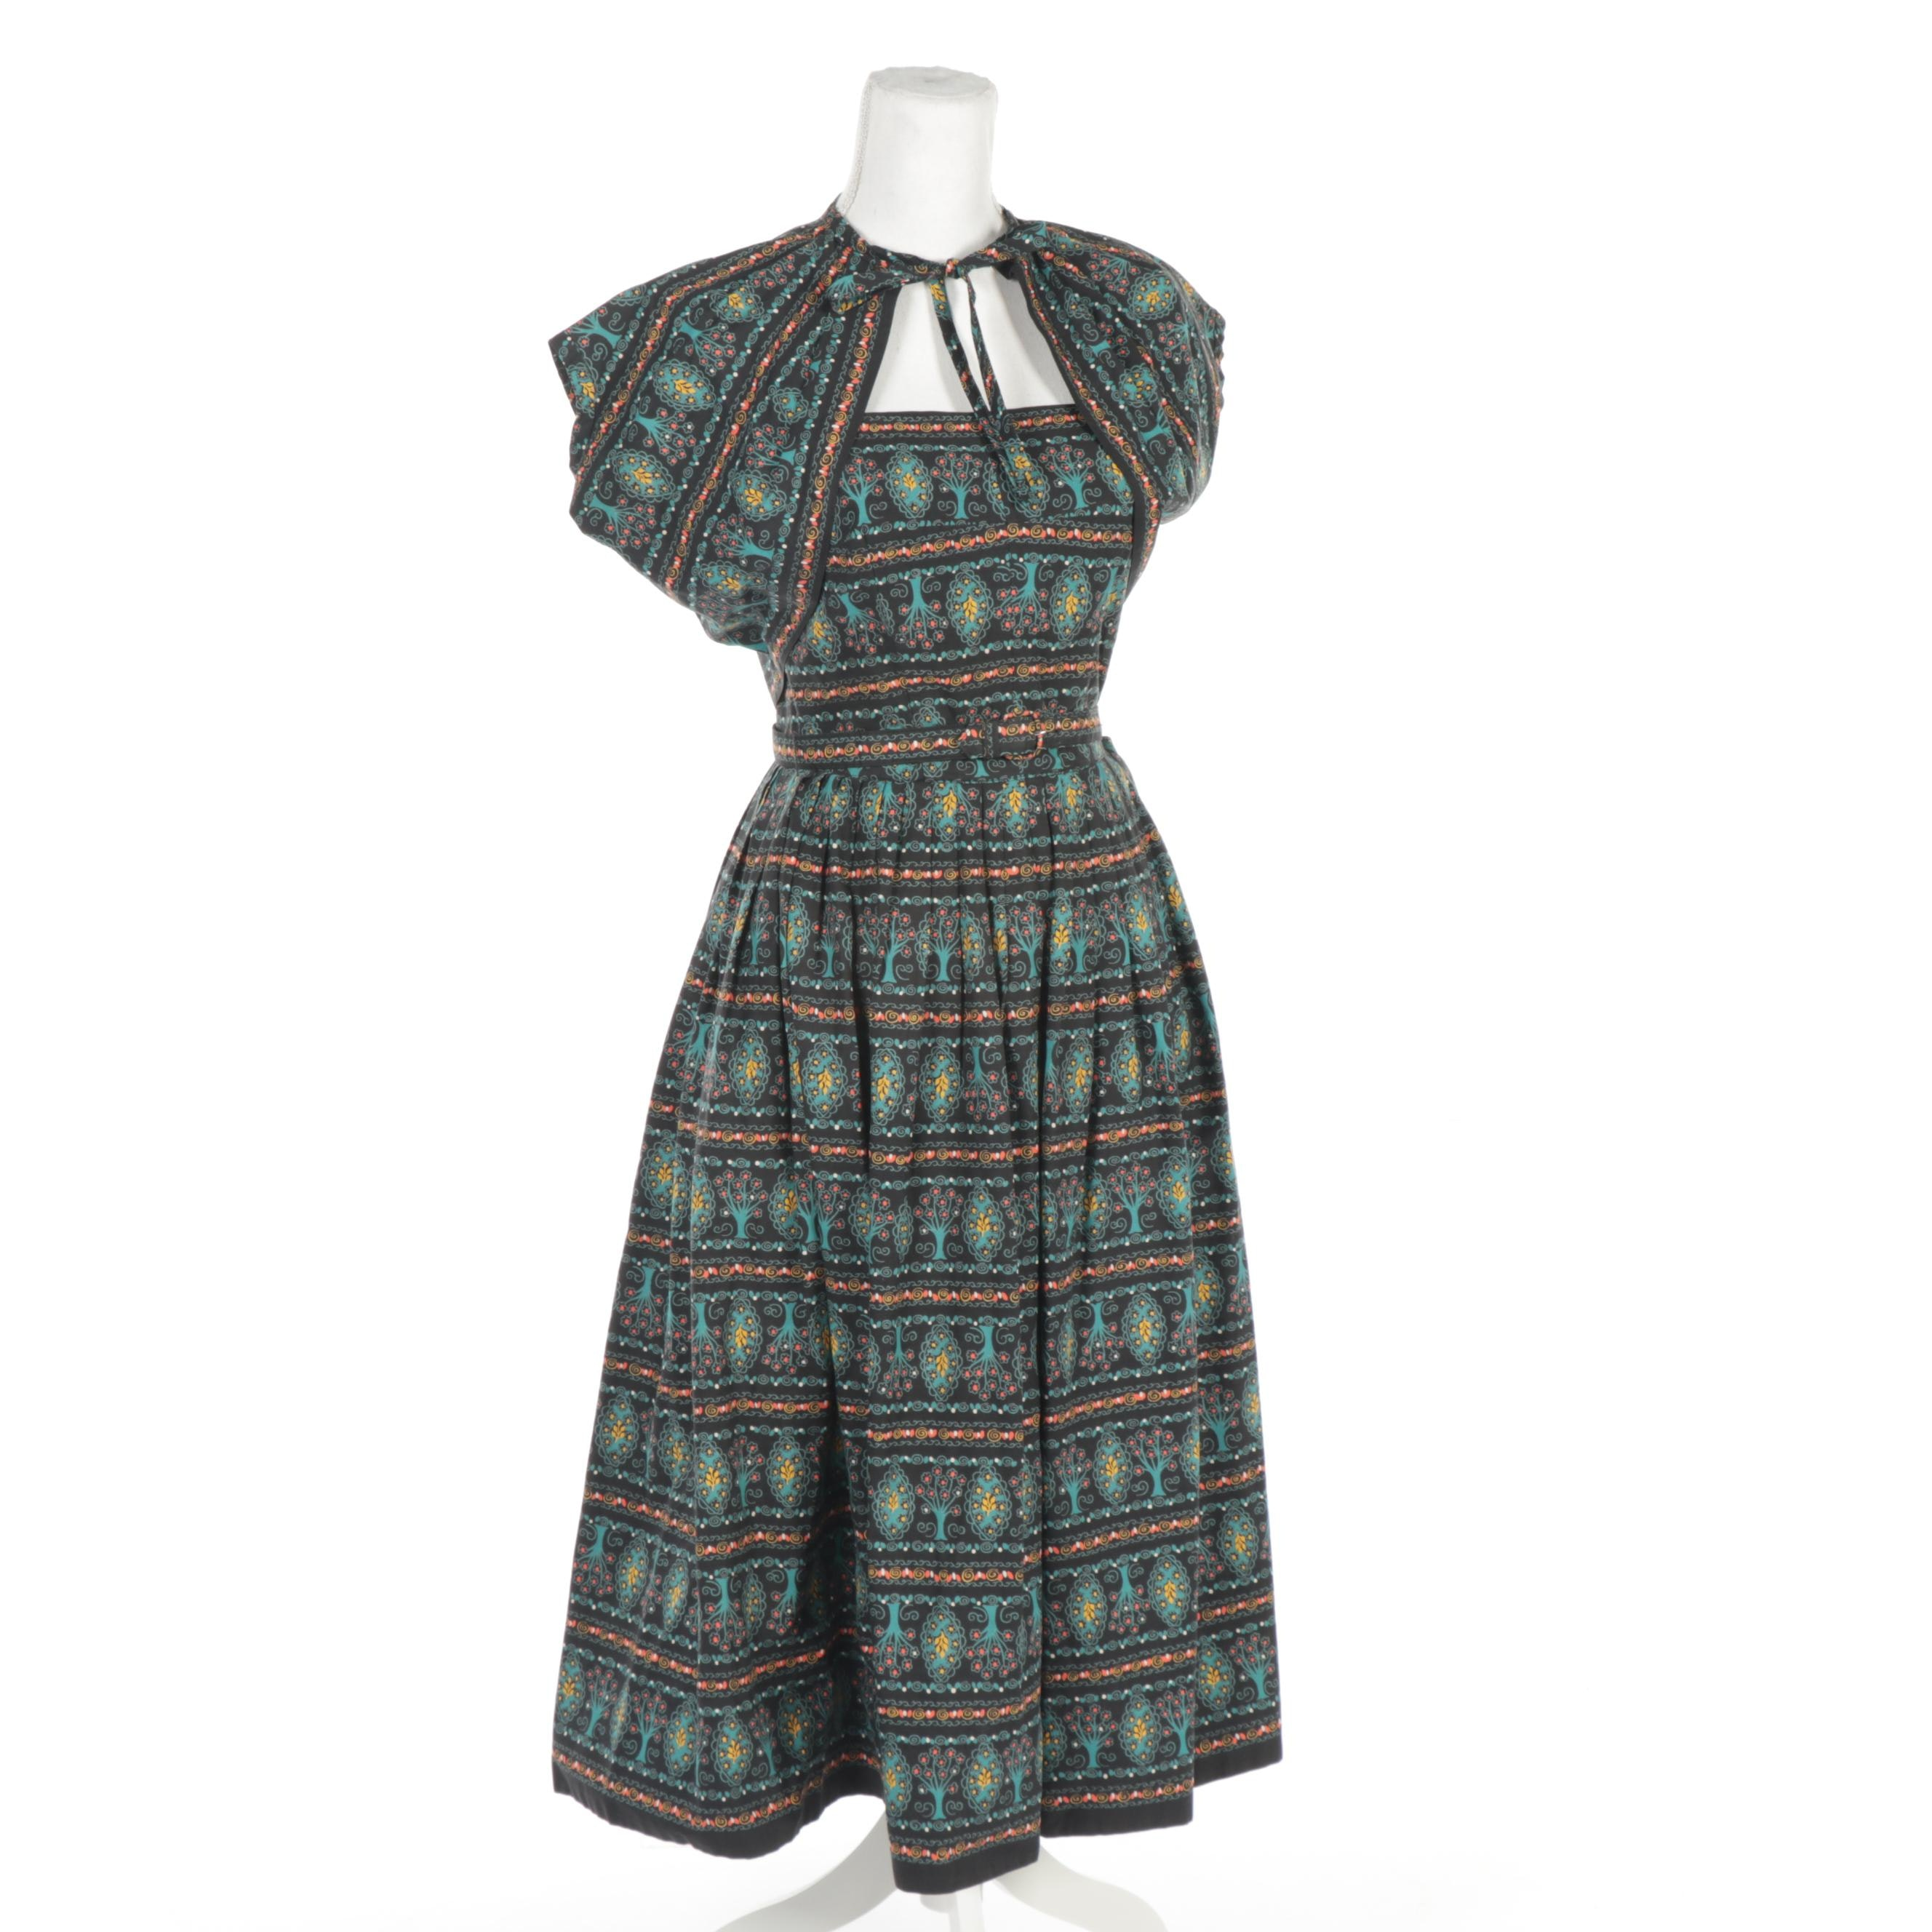 Women's Tree Patterned Strapless Dress with Matching Belt and Shrug, Vintage